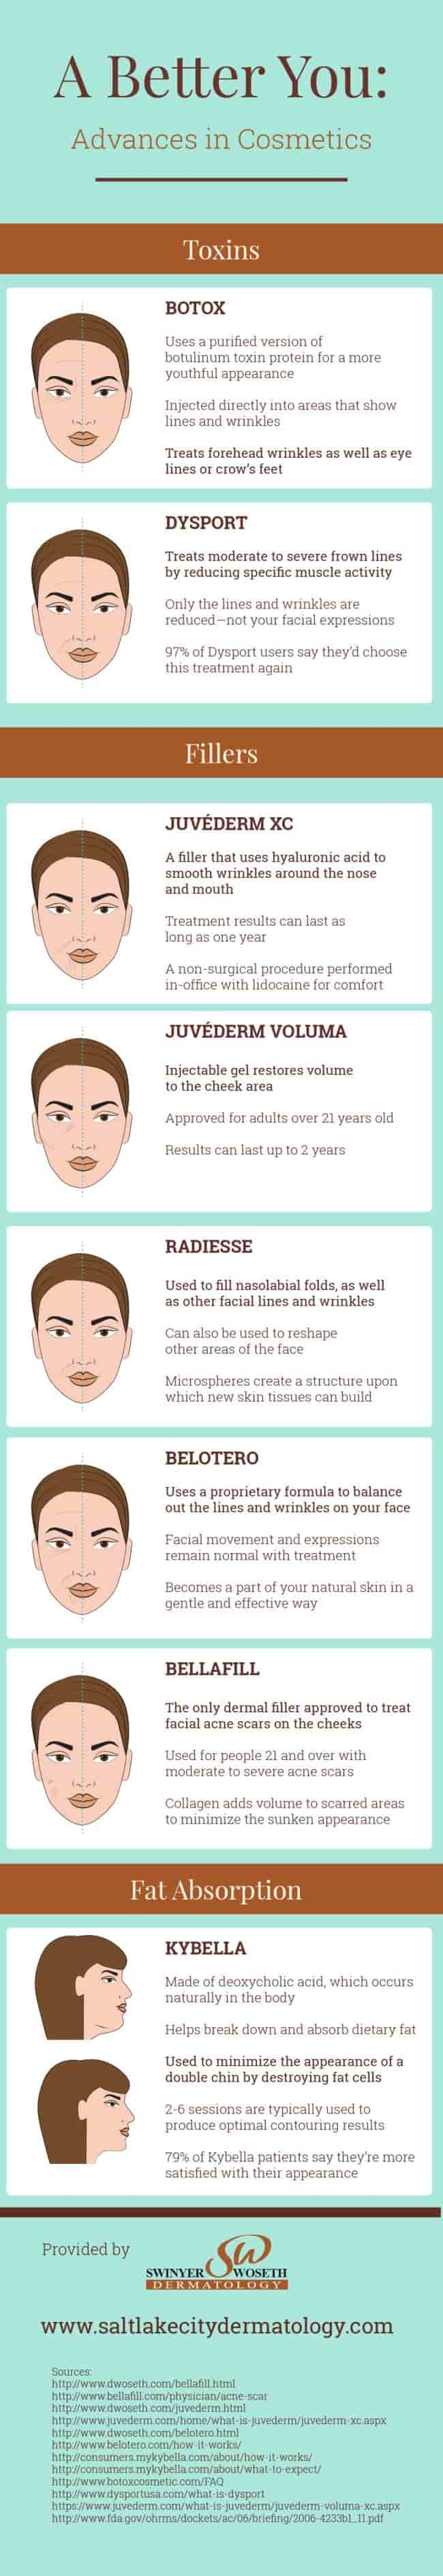 Advances in Cosmetics INFOGRAPHIC